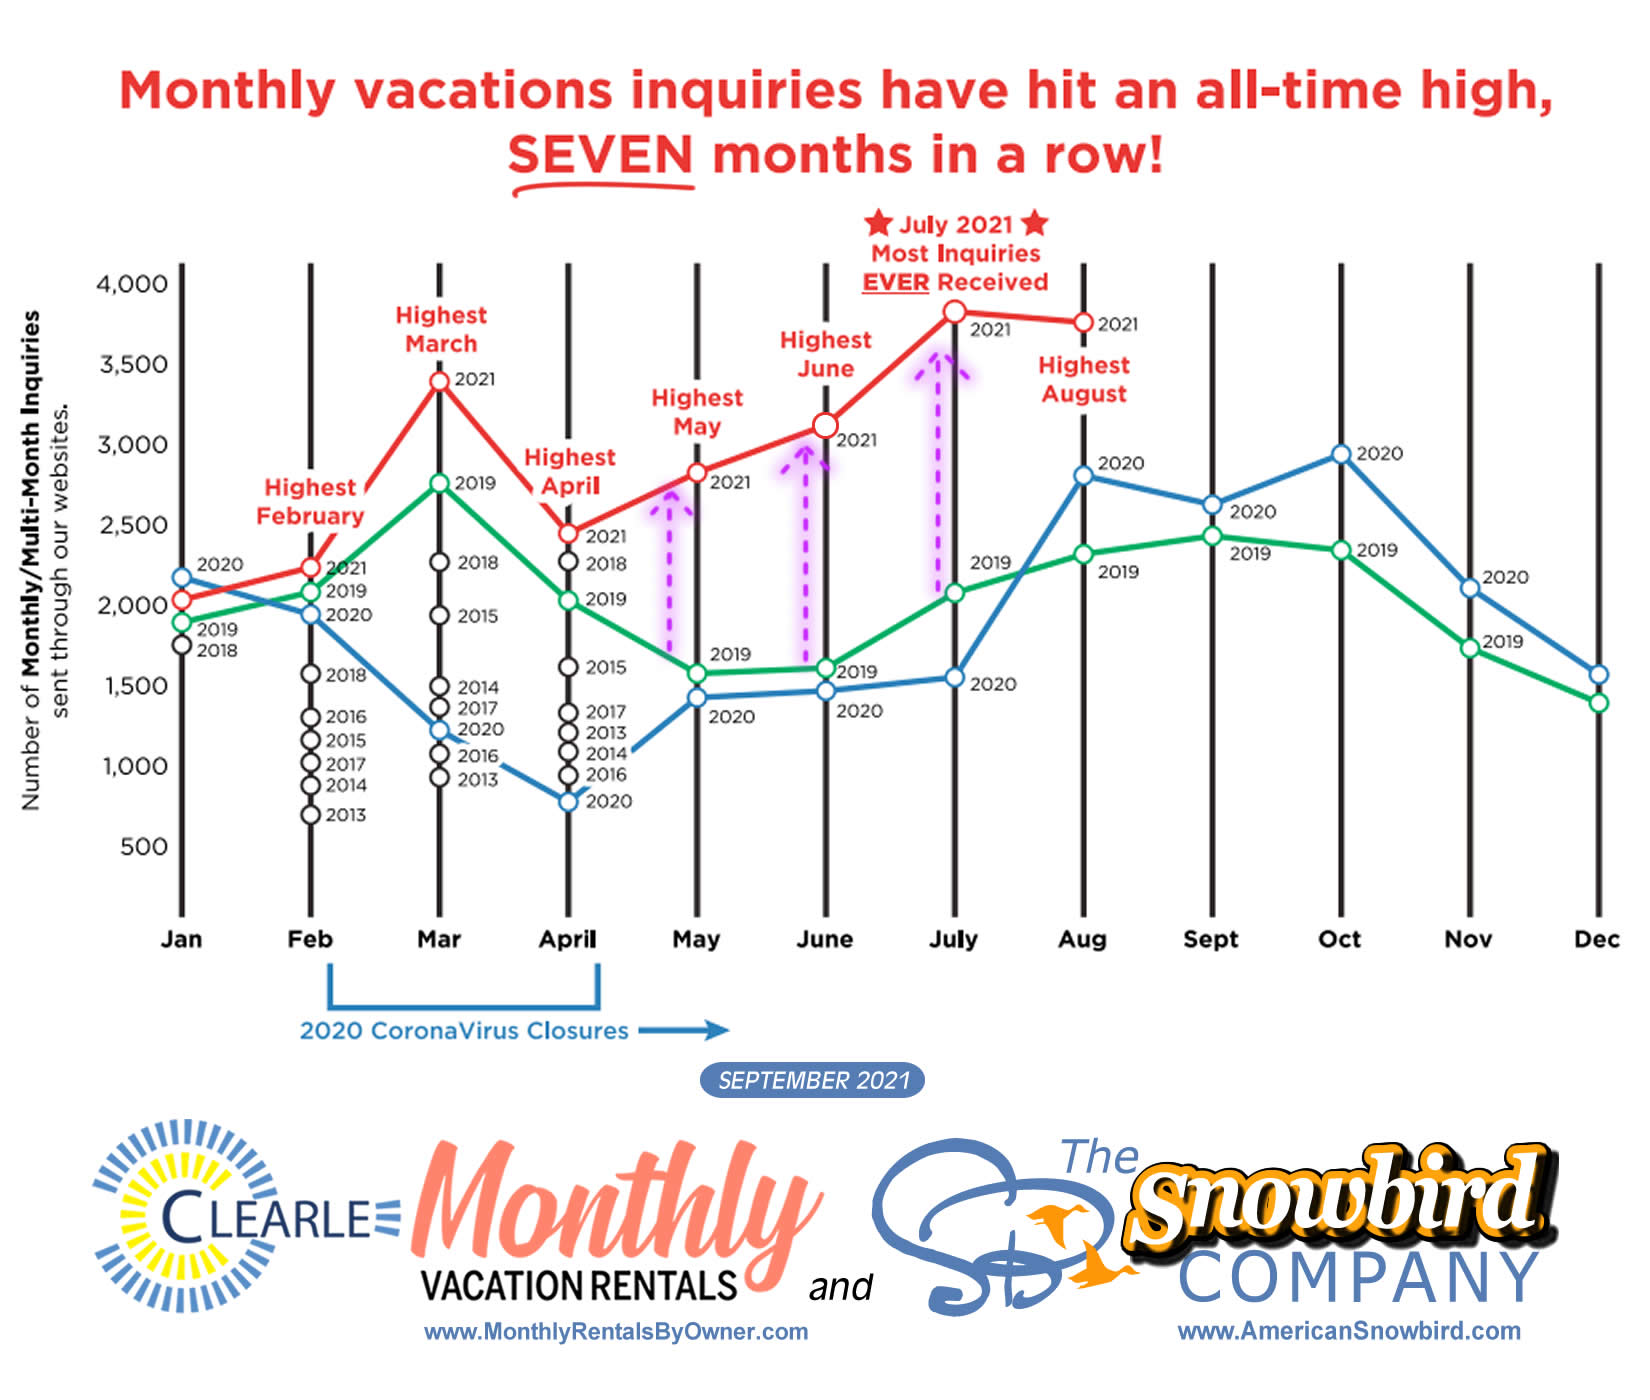 Monthly and Multi-Month Vacation Stays at all-time high for seven months